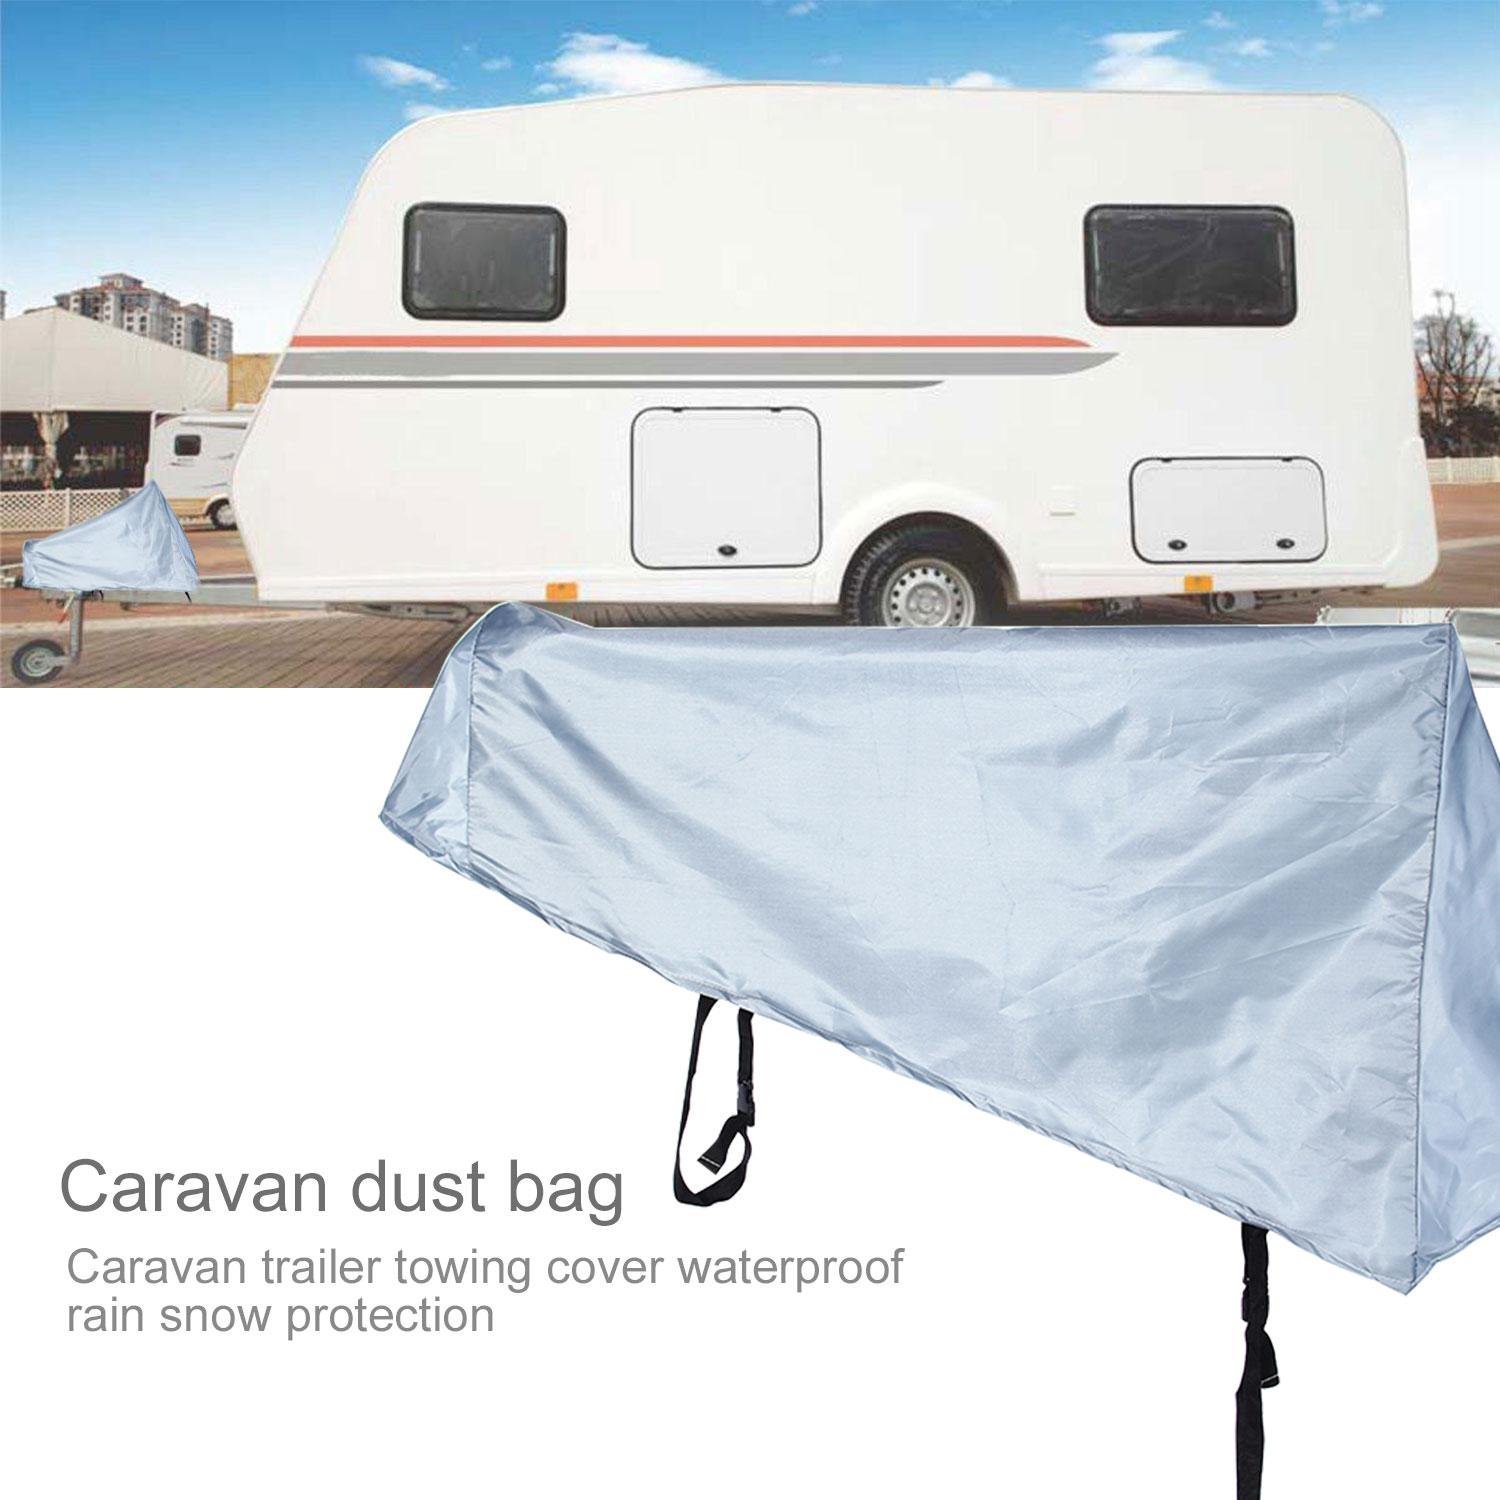 Universal Caravan Trailer Towing Waterproof Rainproof Dust Cover Leegoal Hitch Cover Grey Breathable Tow Hitch Cover